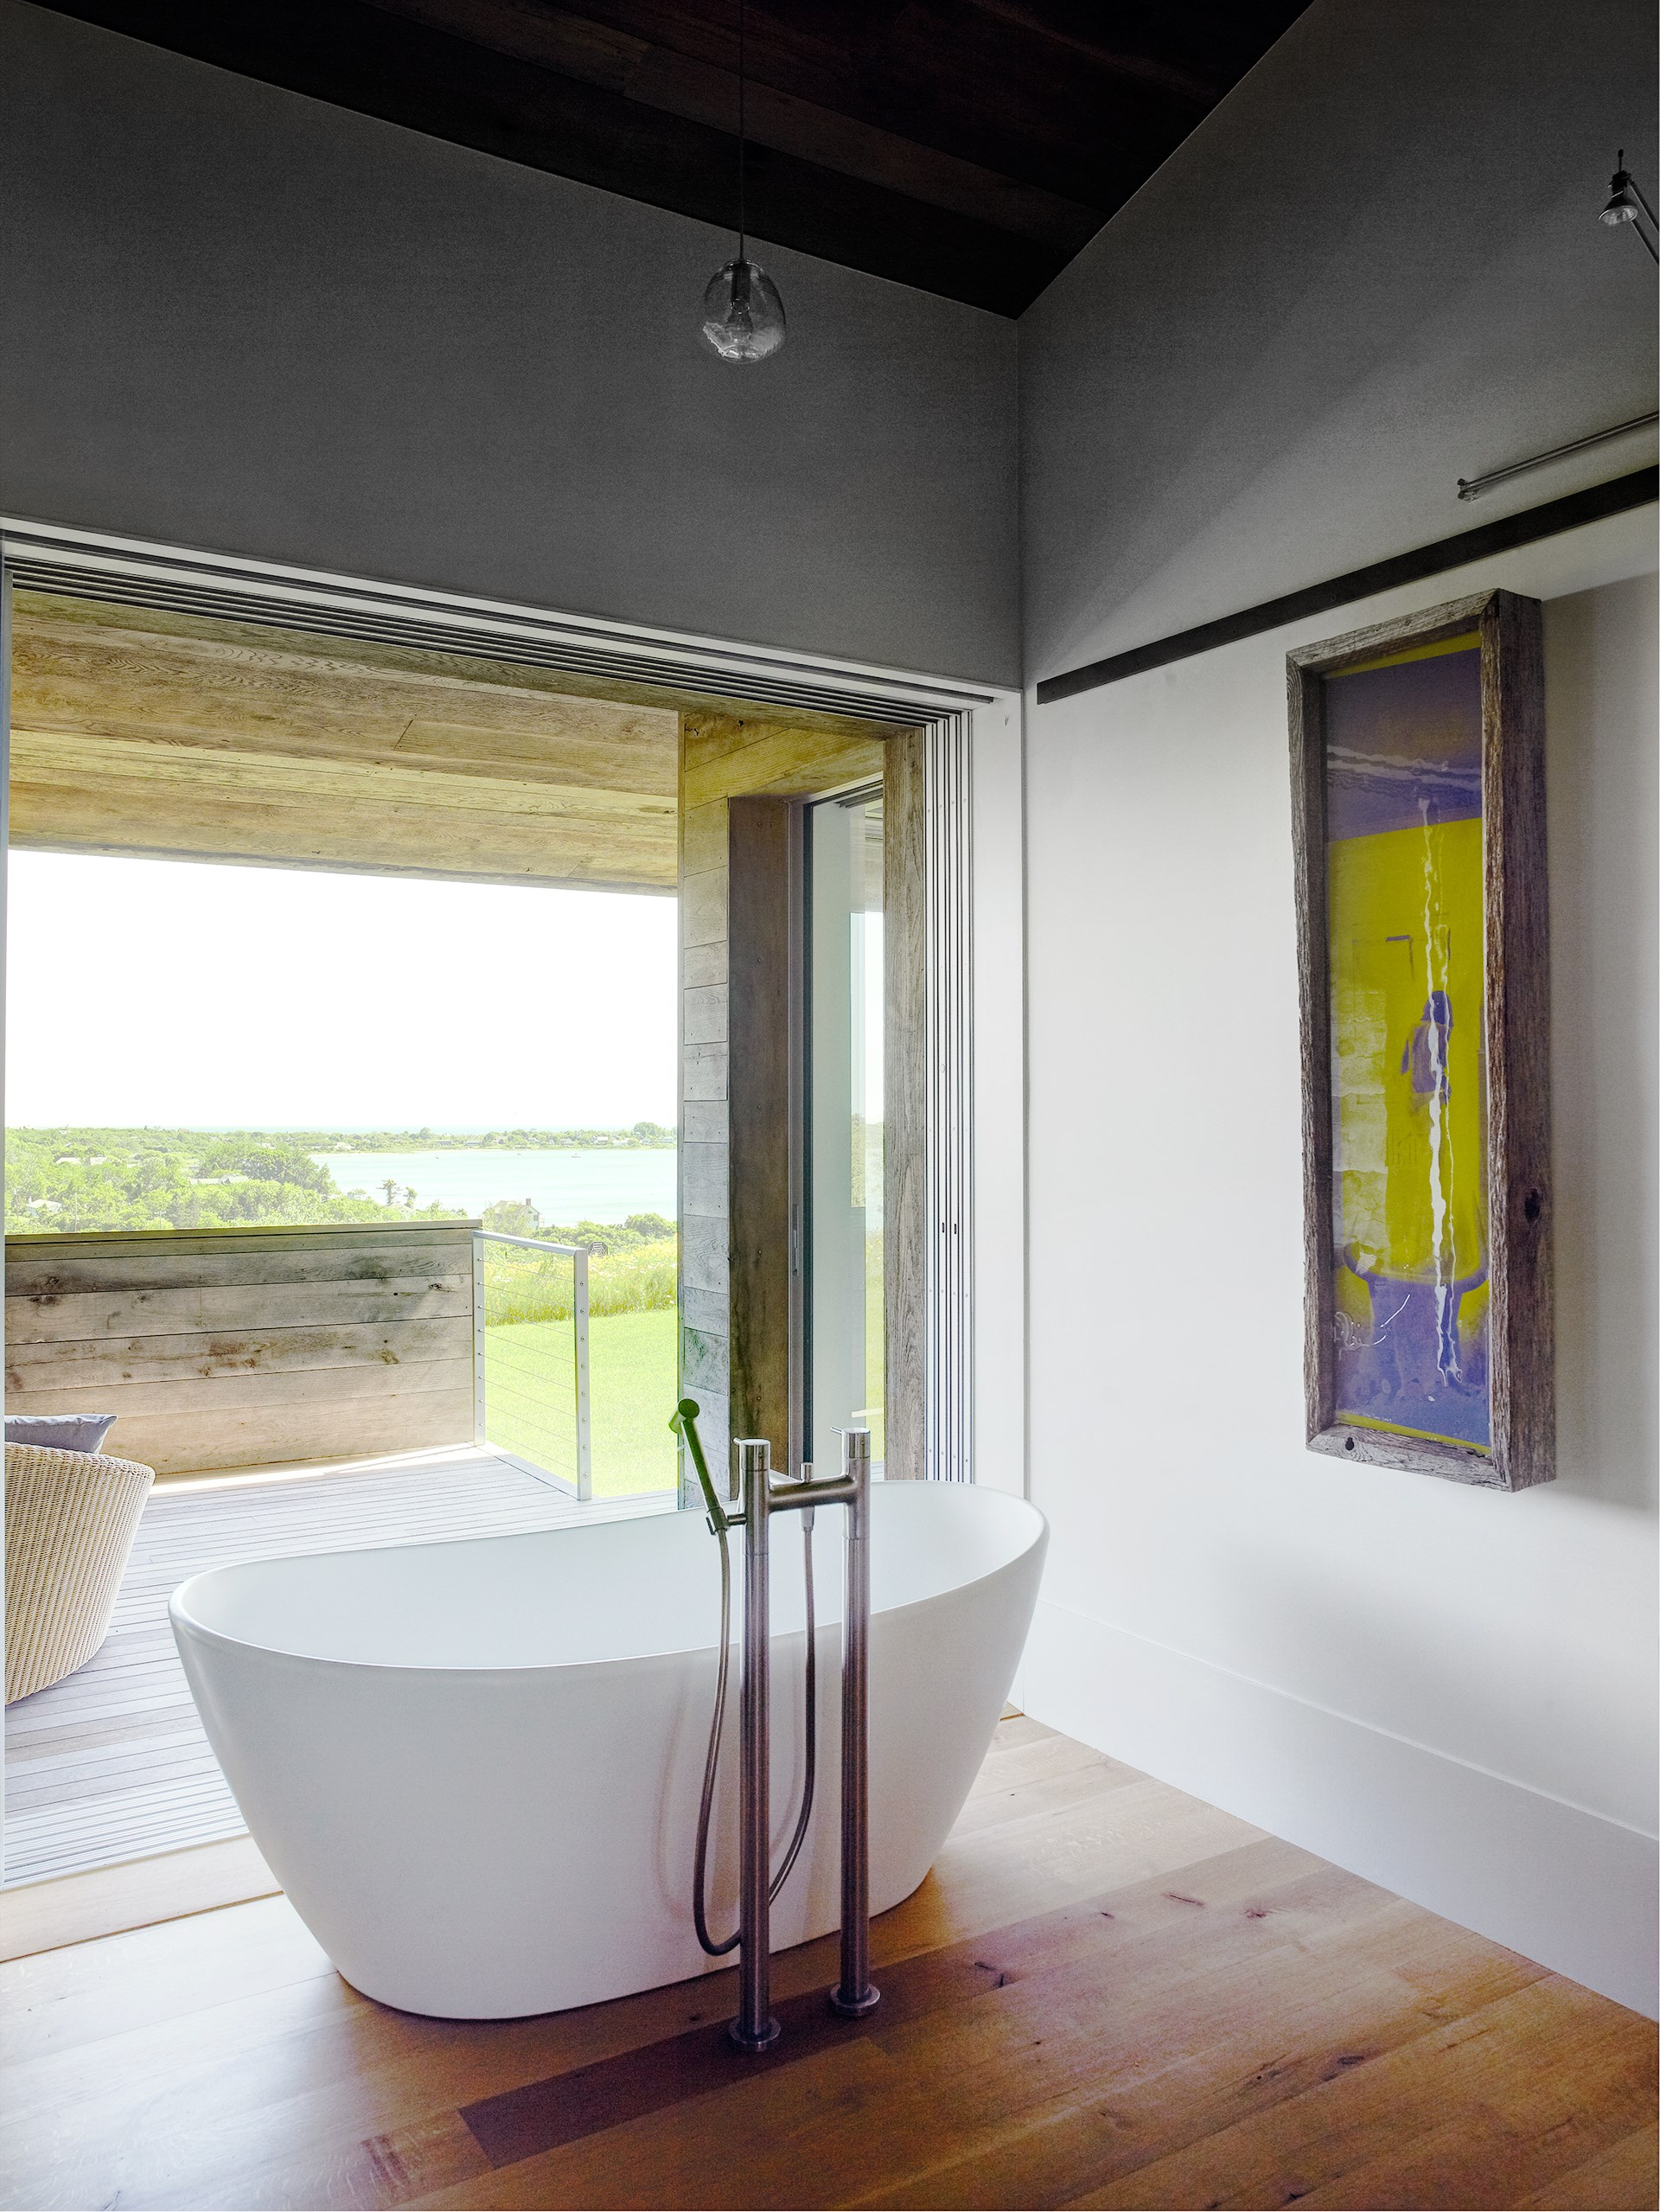 "A freestanding bath is always made better with a view, as is the case with this stunning master ensuite in a [Montauk holiday house](http://www.homestolove.com.au/luxury-montauk-house-by-bates-masi-architects-4473|target=""_blank""). *Photo: Richard Powers*"